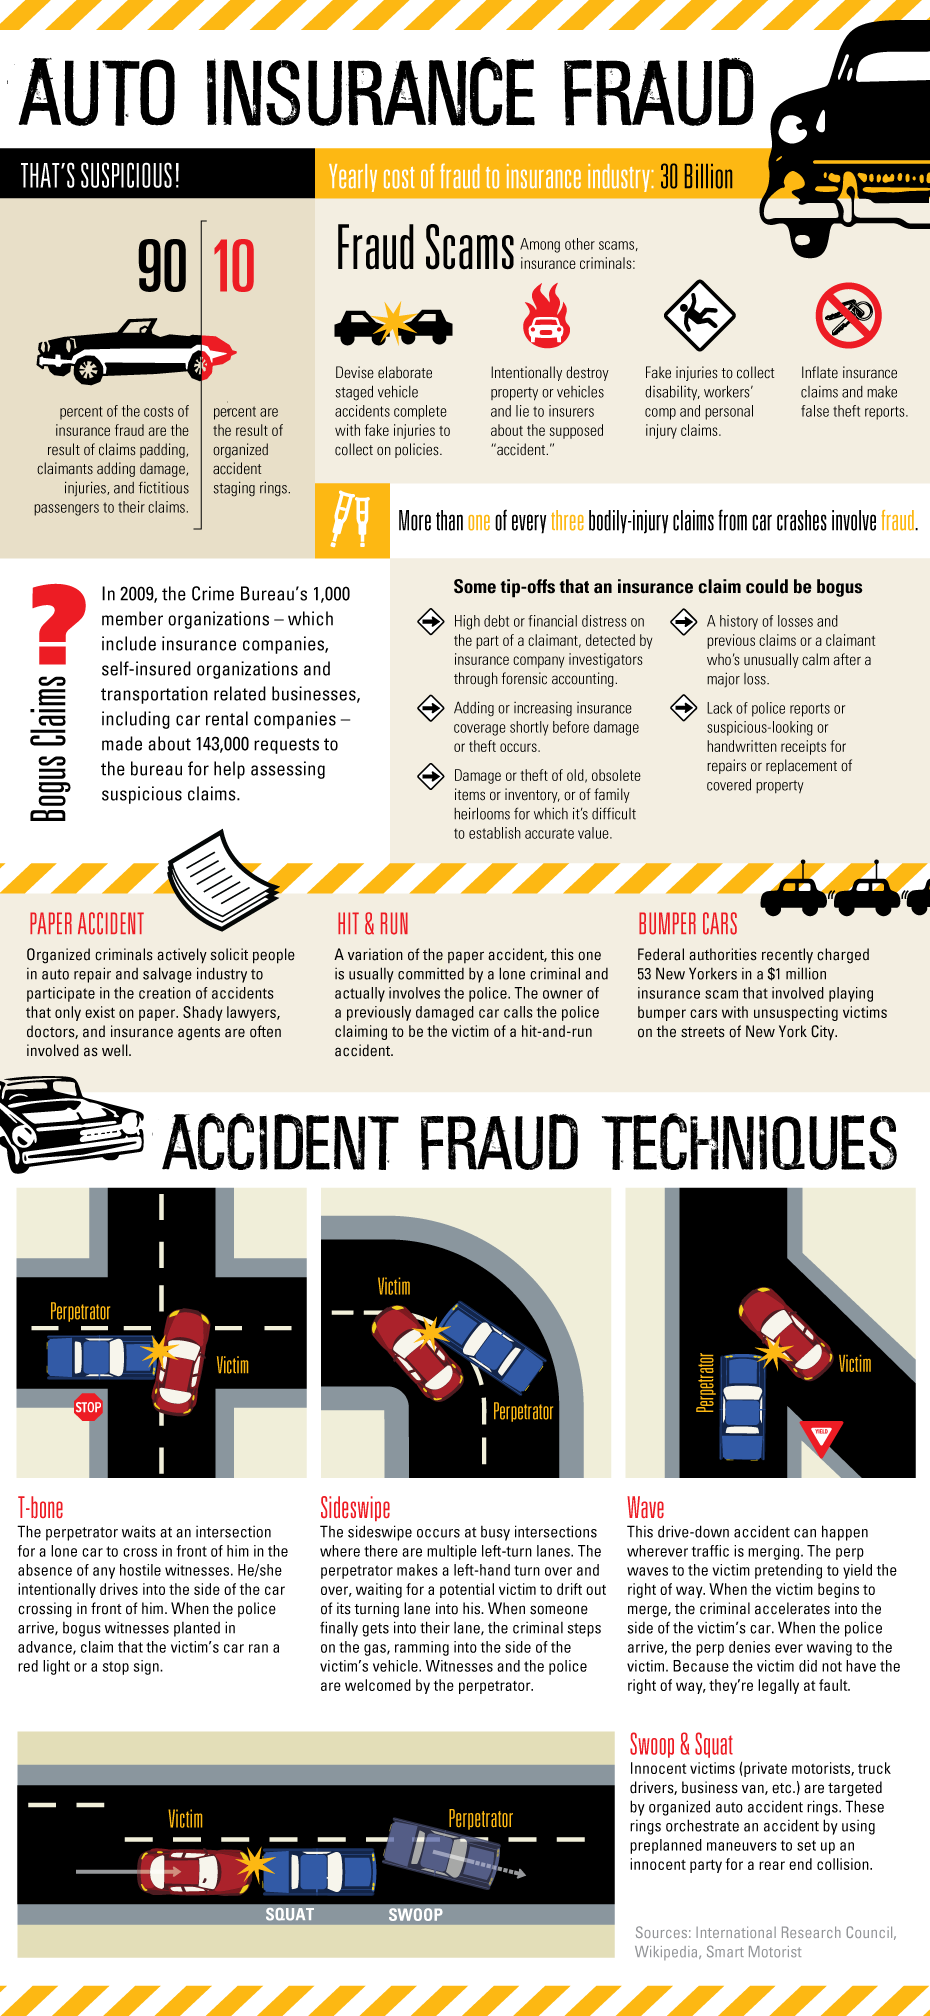 Auto Insurance Fraud Visual Ly Car Insurance Insurance Quotes